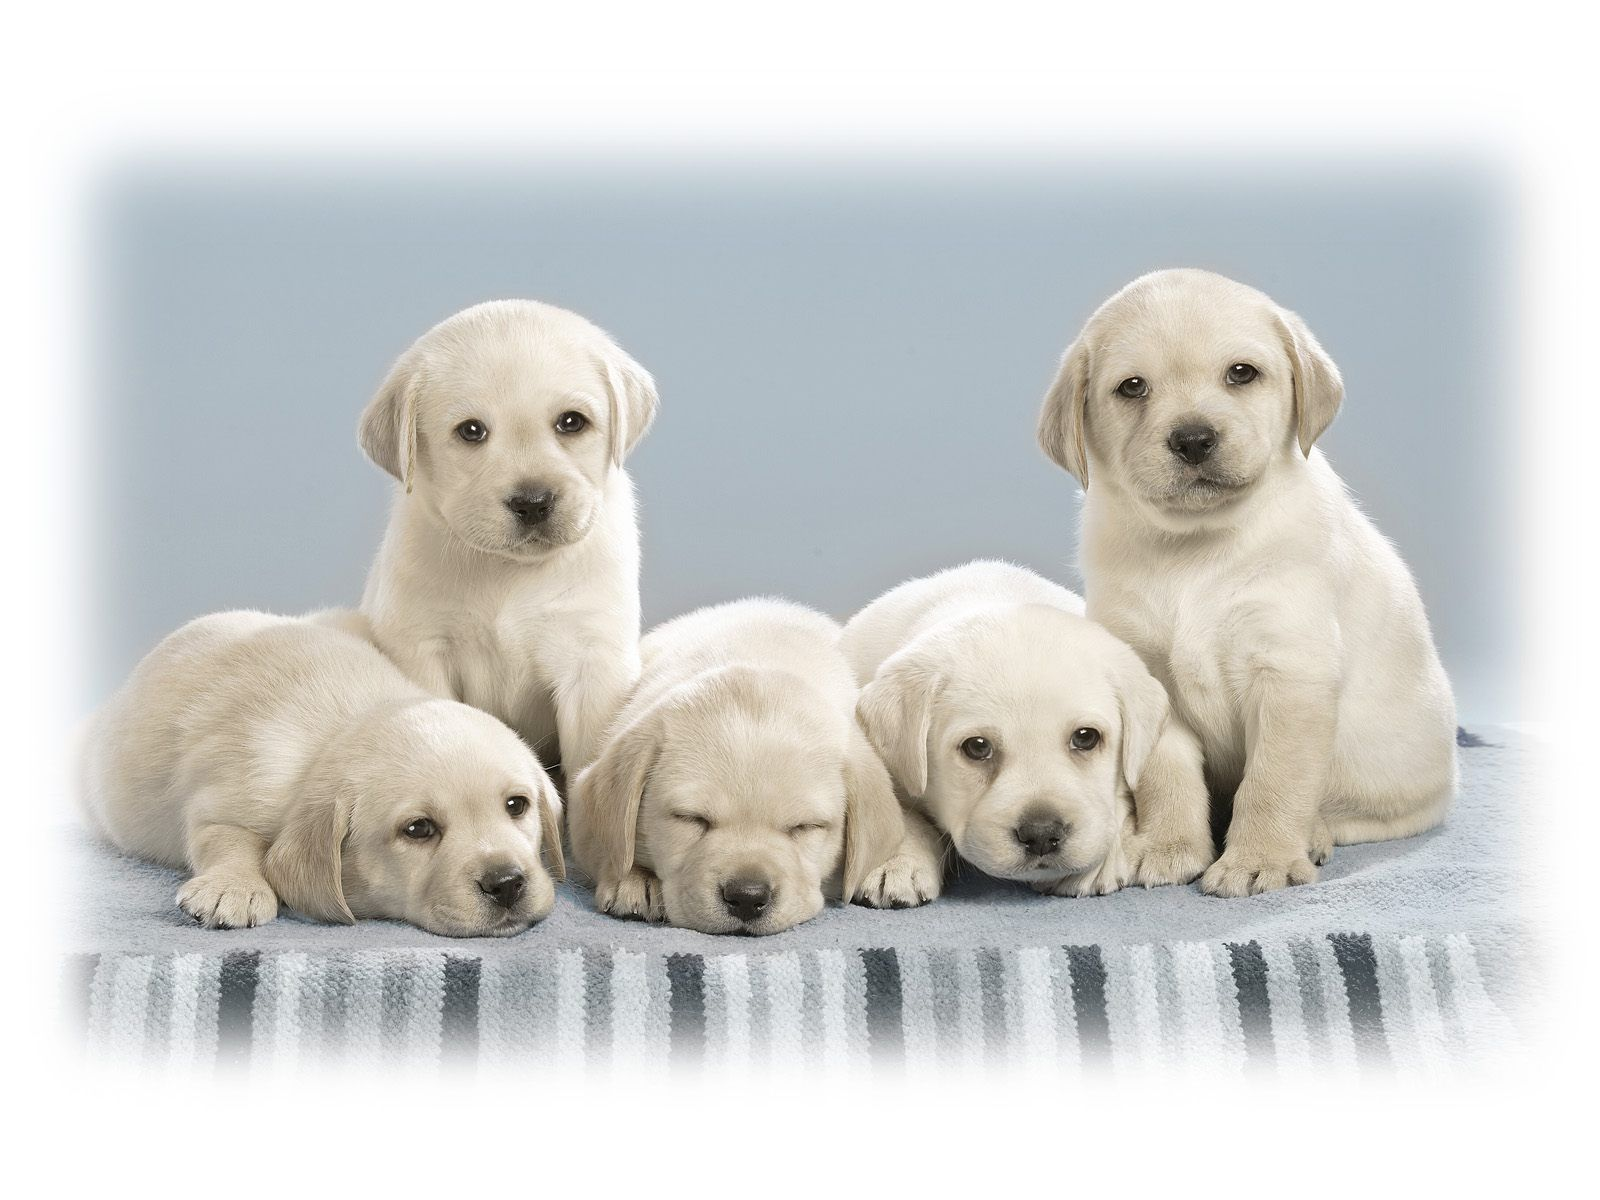 Cute-Dogs-And-Puppies-wallpaper-wpc580180